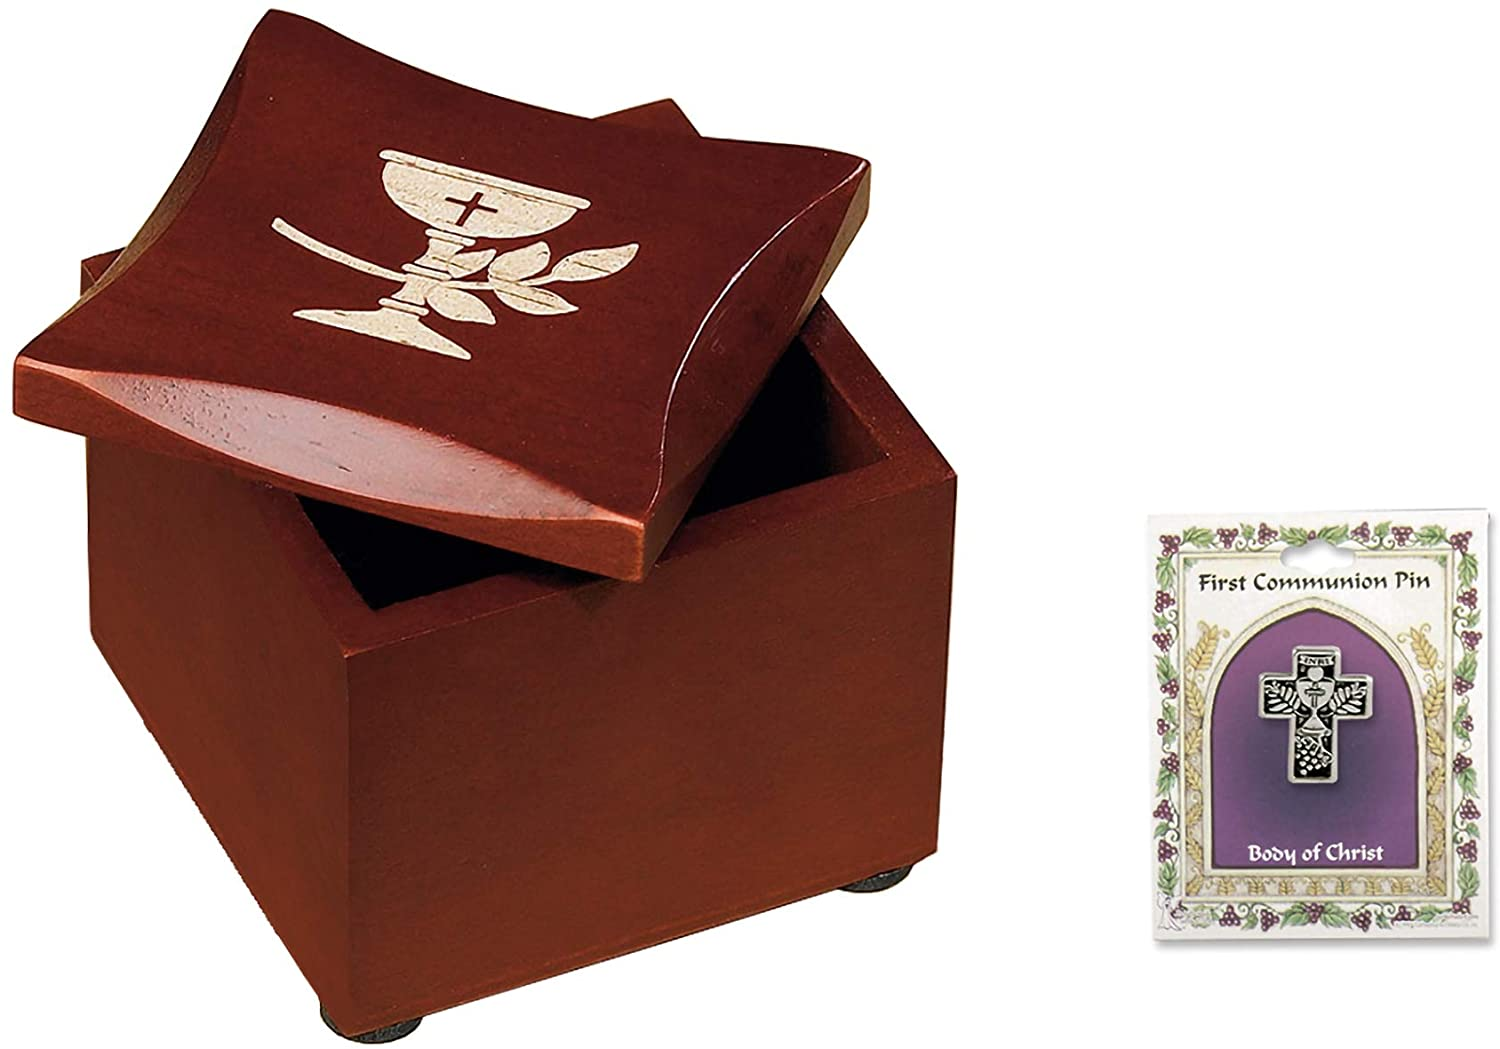 Abbey CA Gift Cross Chalice Cherry Brown and Silver 3 x 2 Wood Decorative Box and Pin